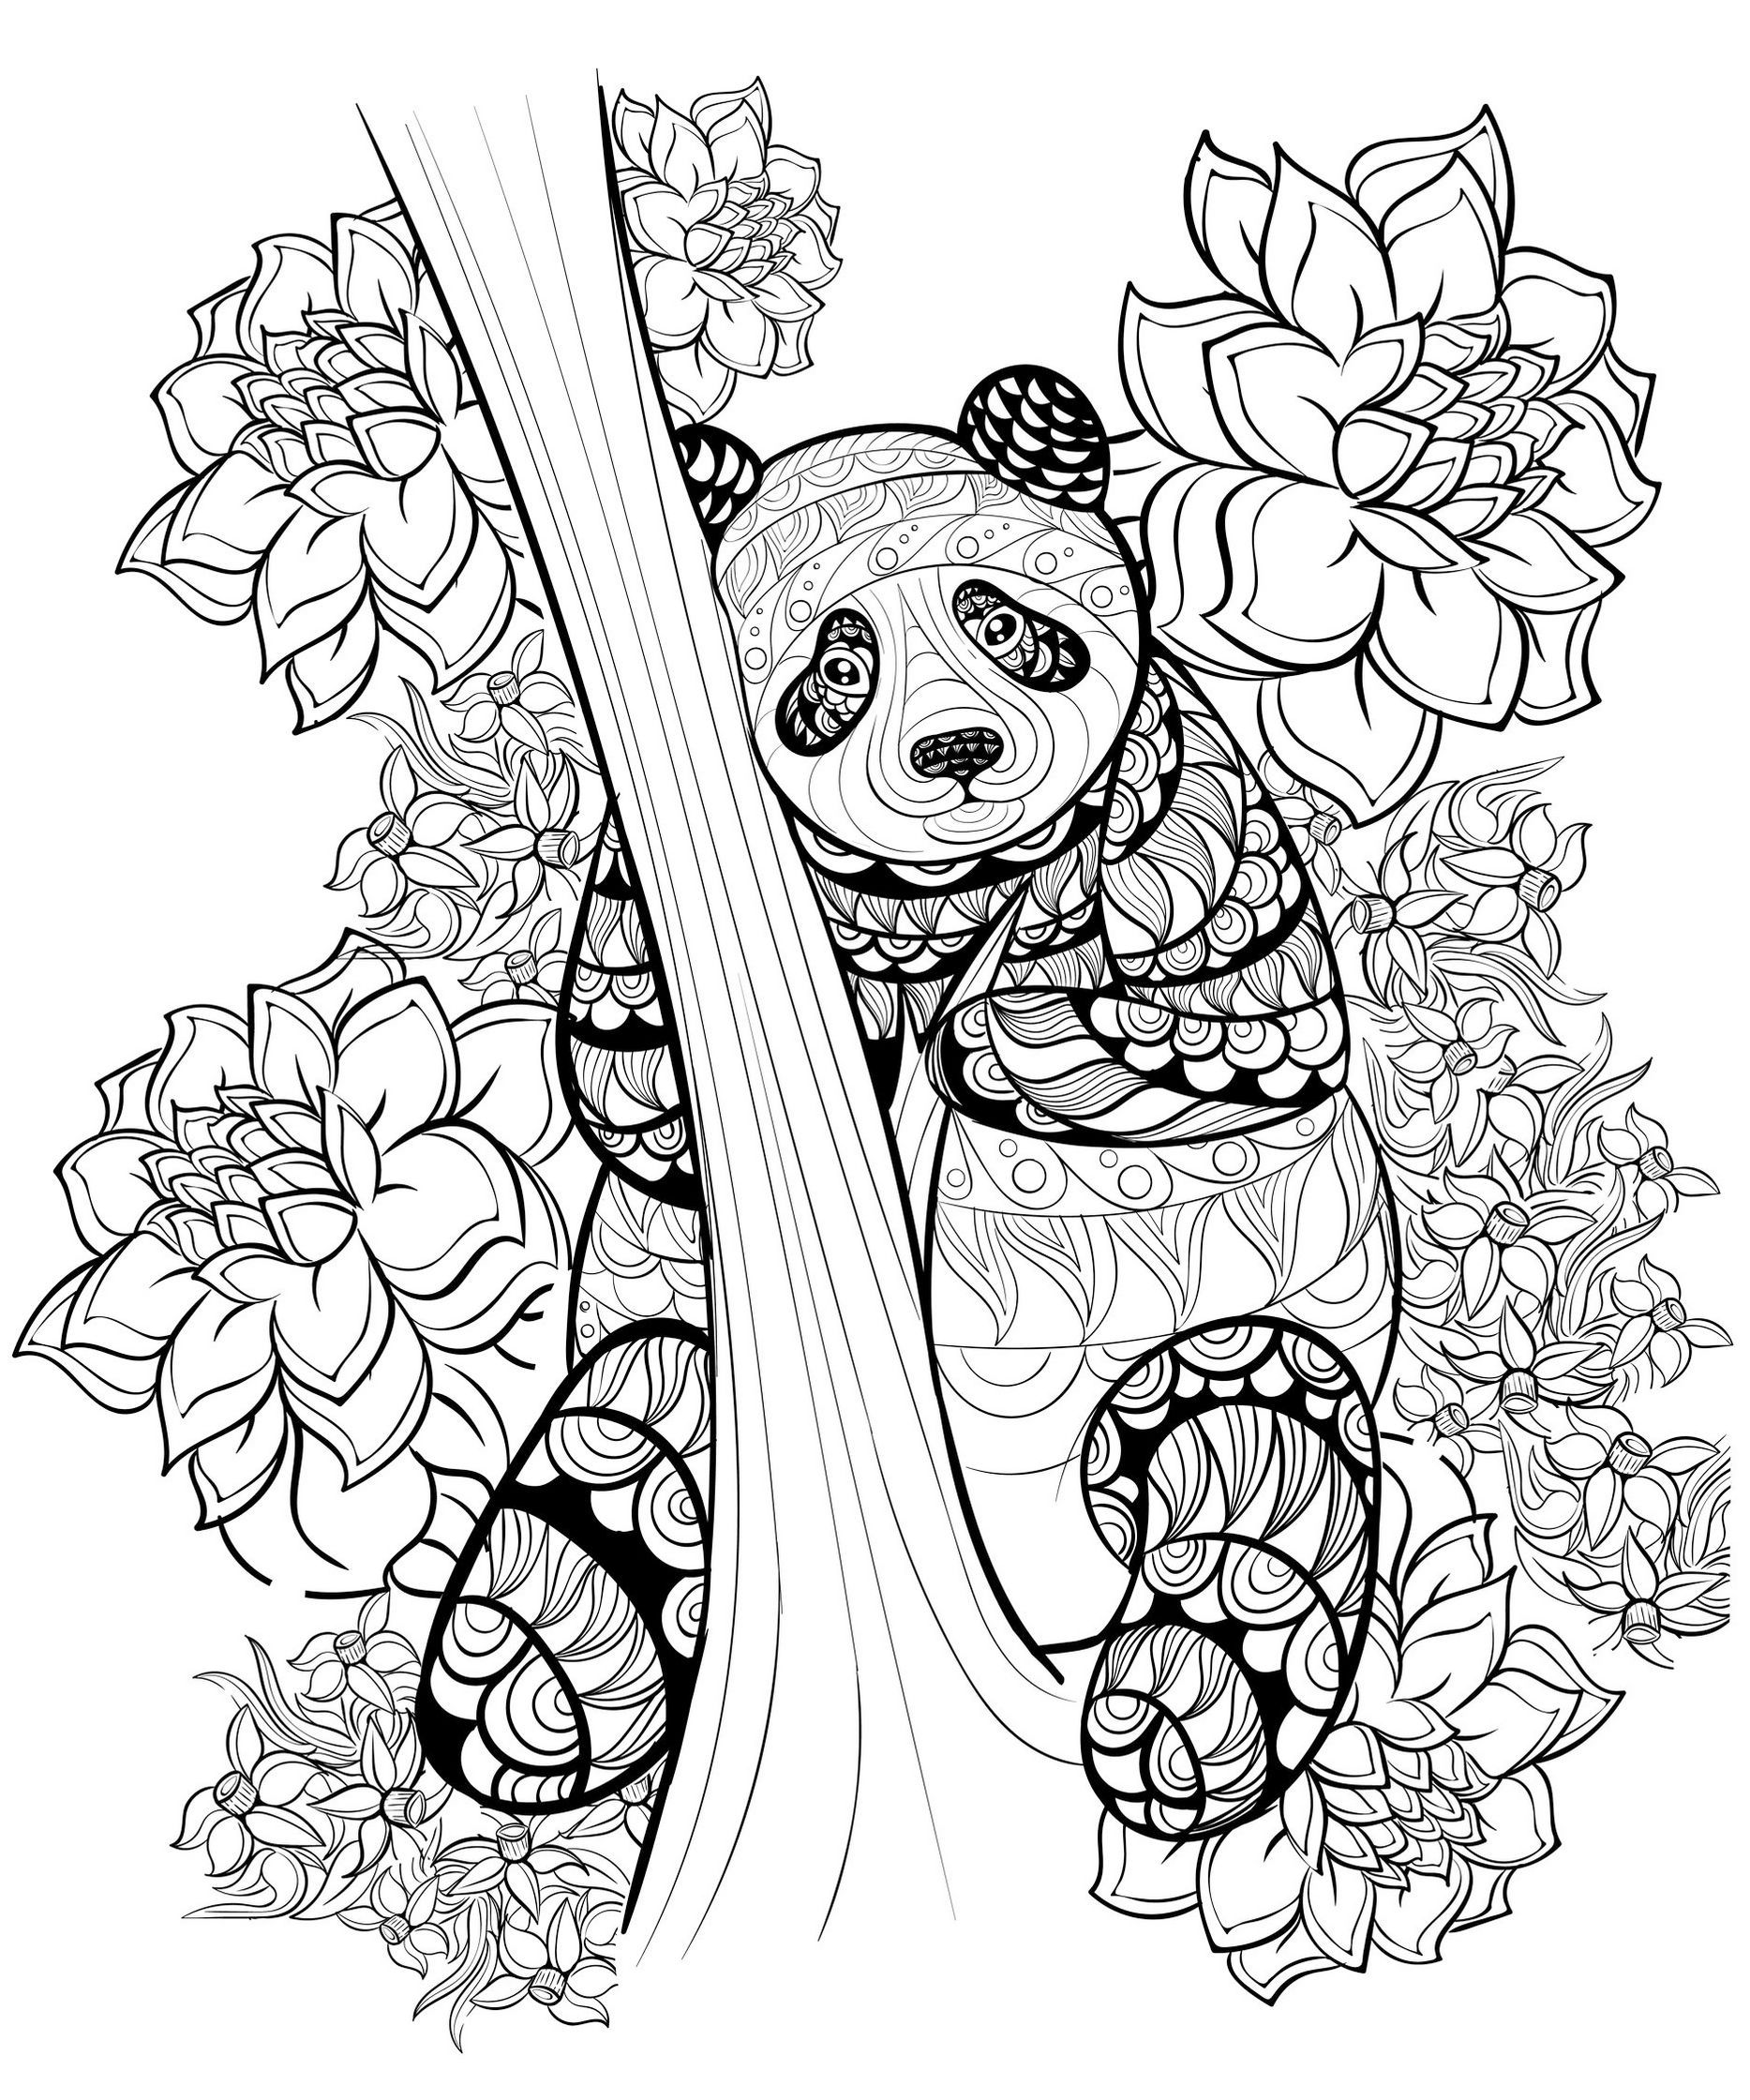 Zentangle panda coloring sheet printable | Coloring | Pinterest ...